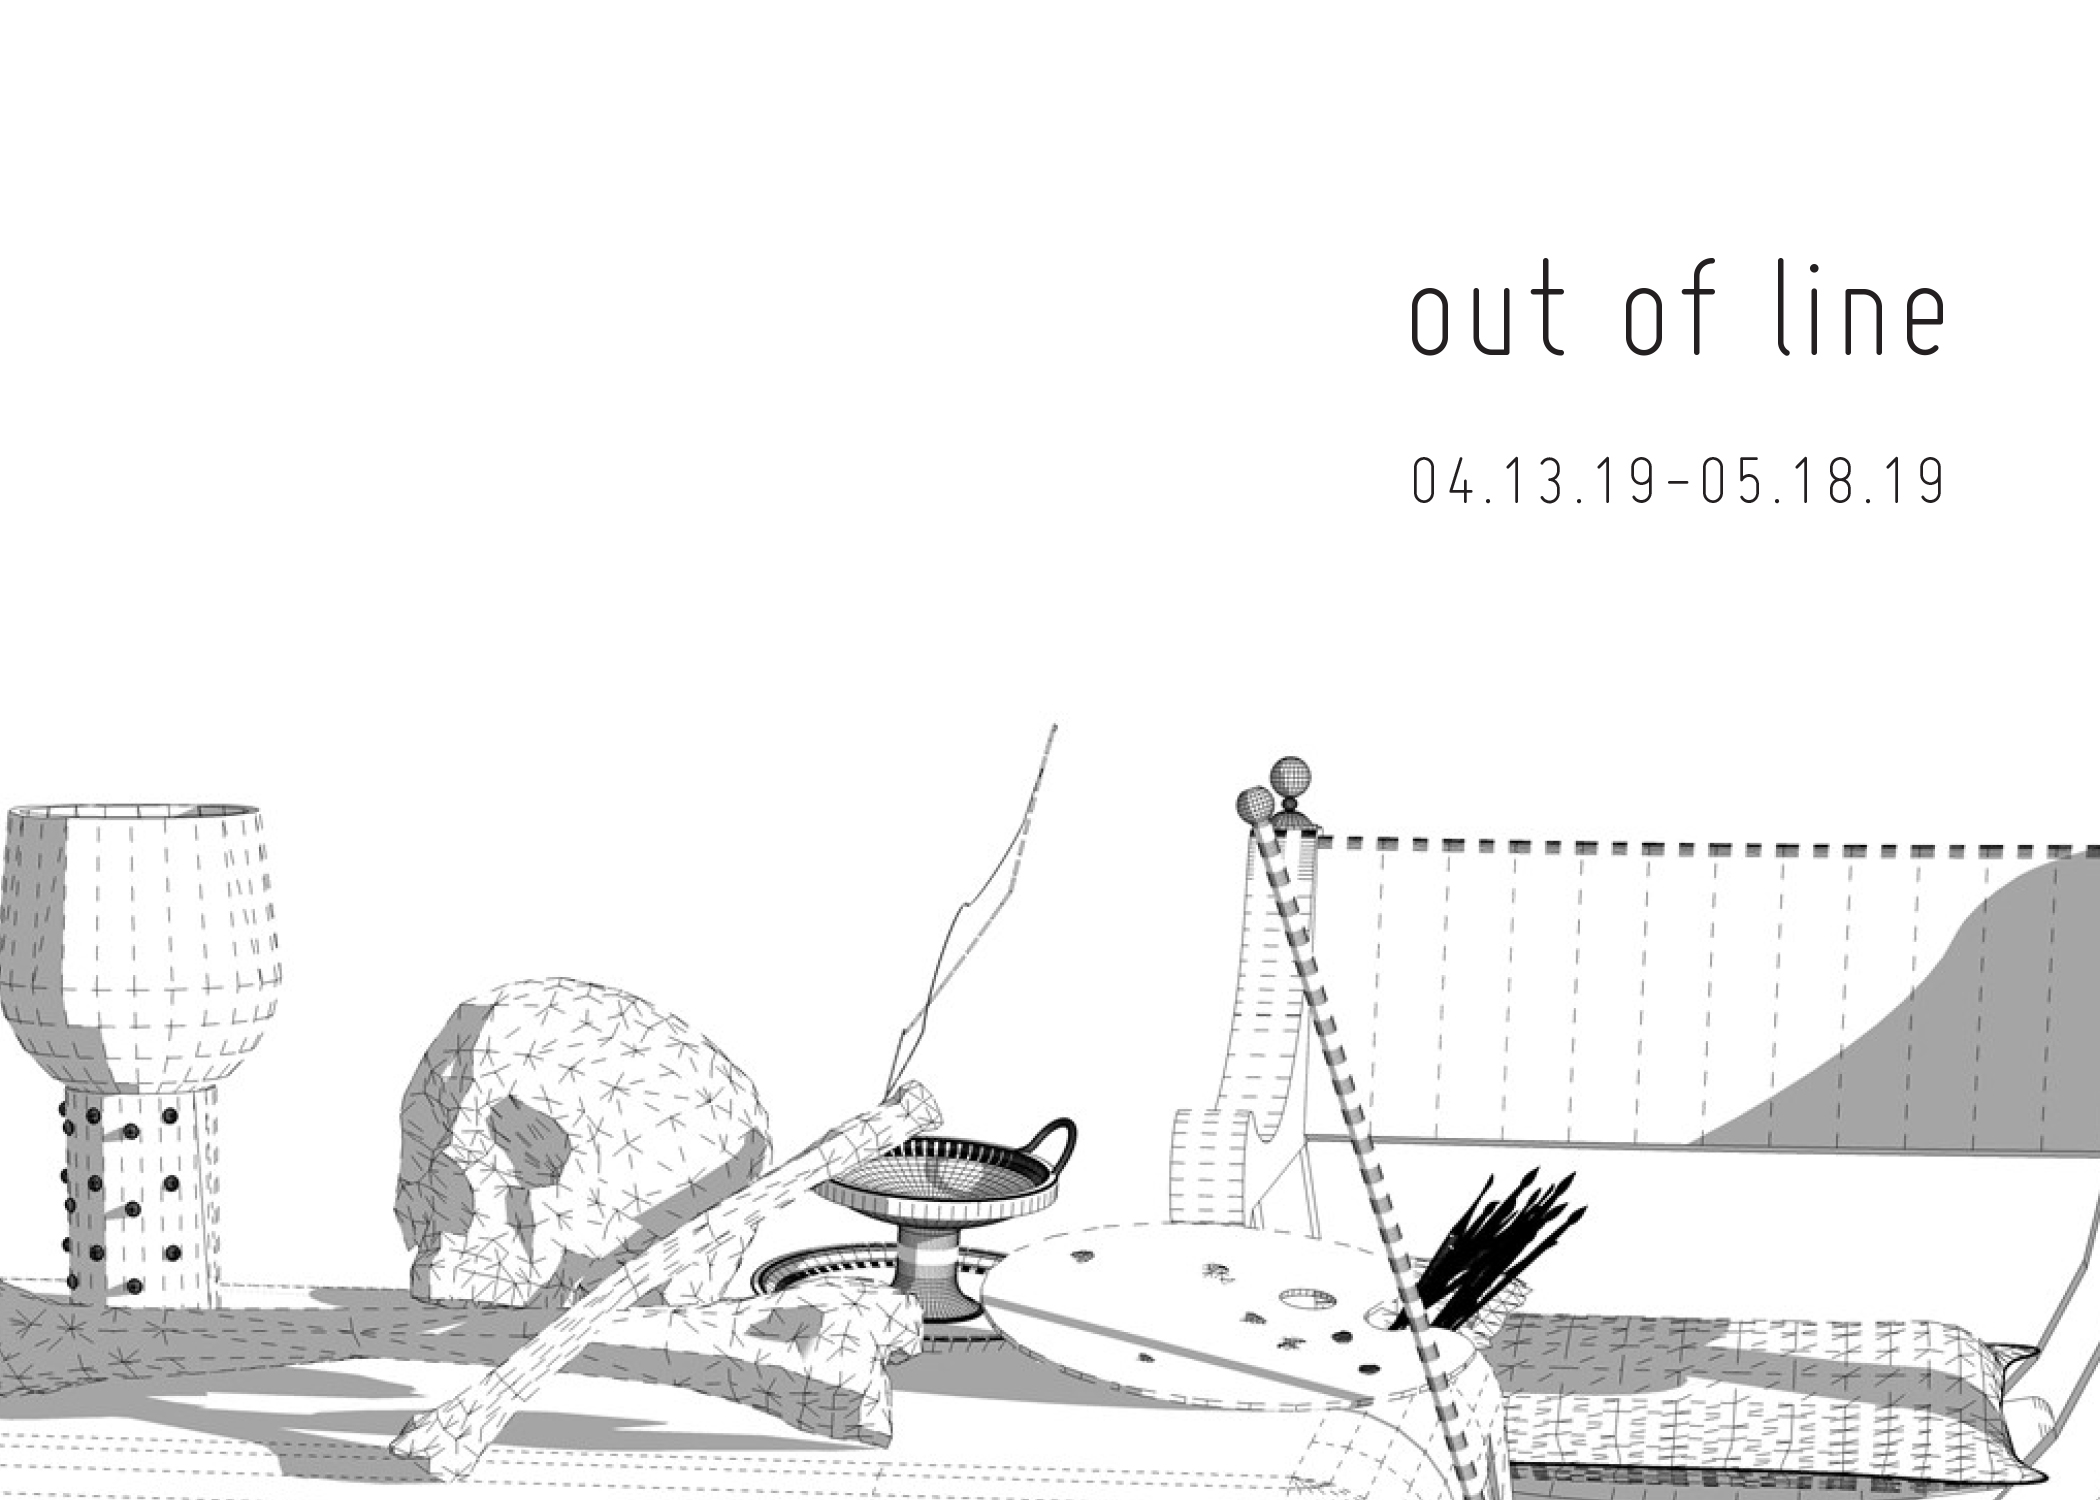 Out of Line   04.13.19-05.18.19